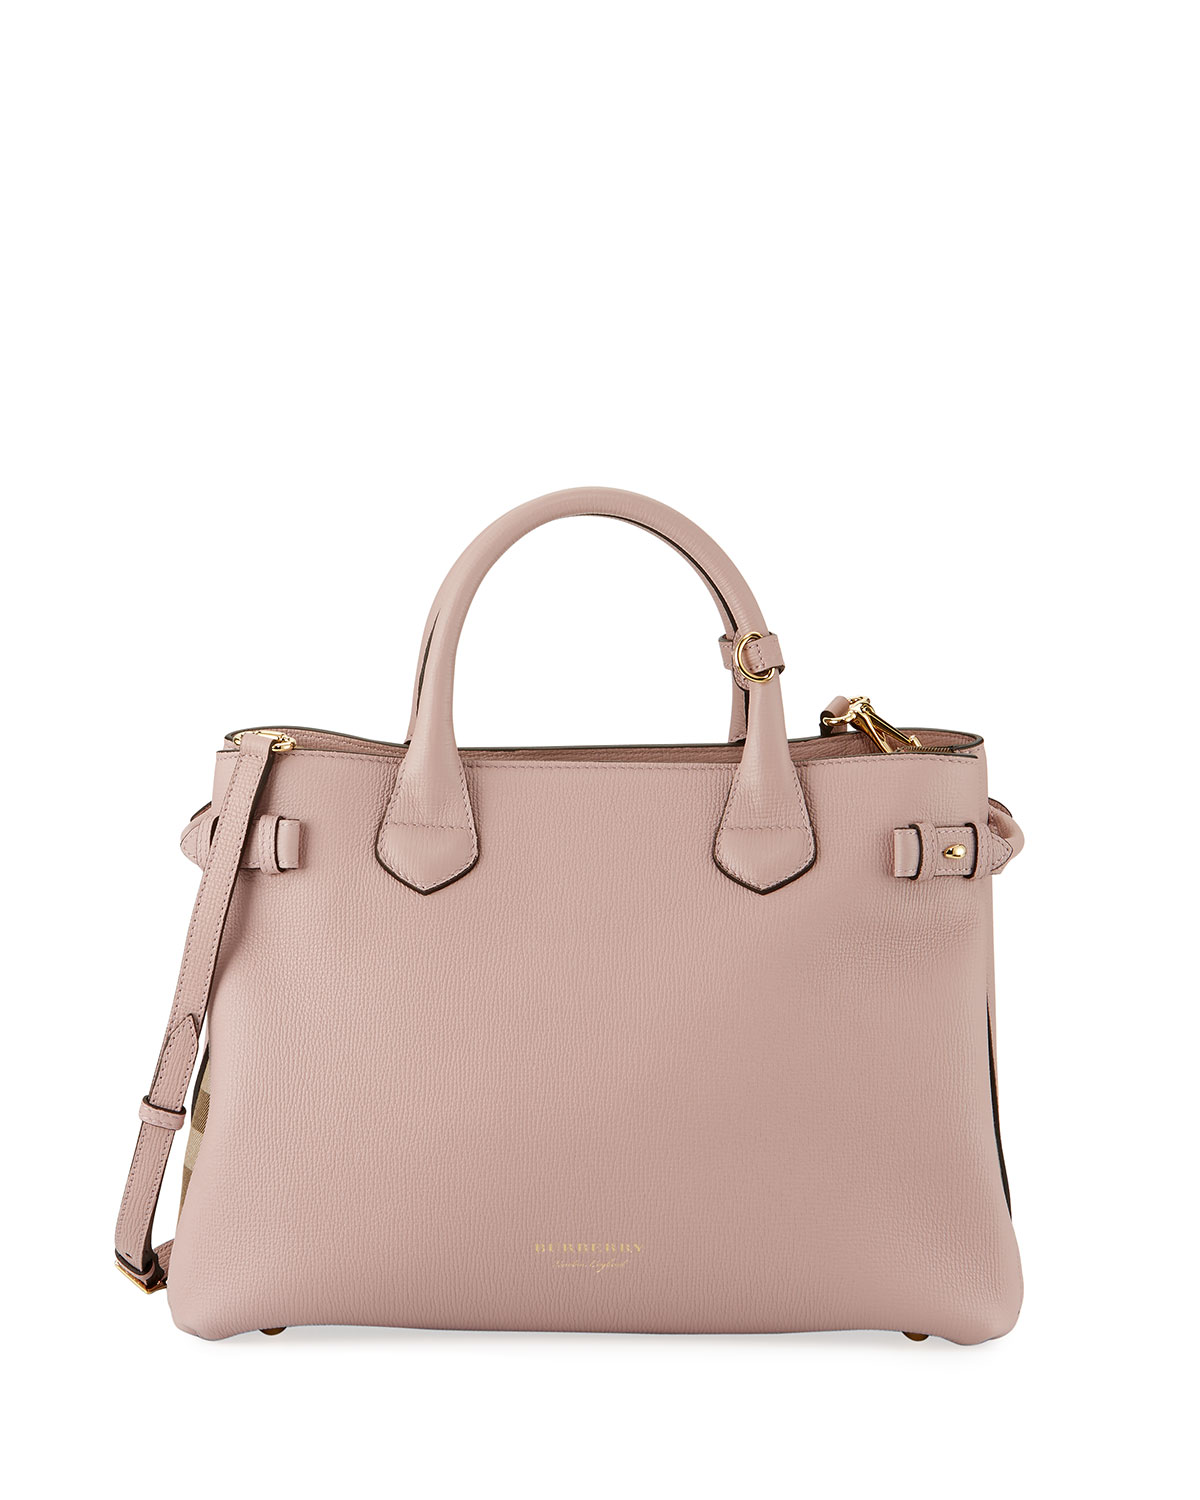 0980ce2e94 Burberry Banner House Check Derby Tote Bag, Pink | Neiman Marcus